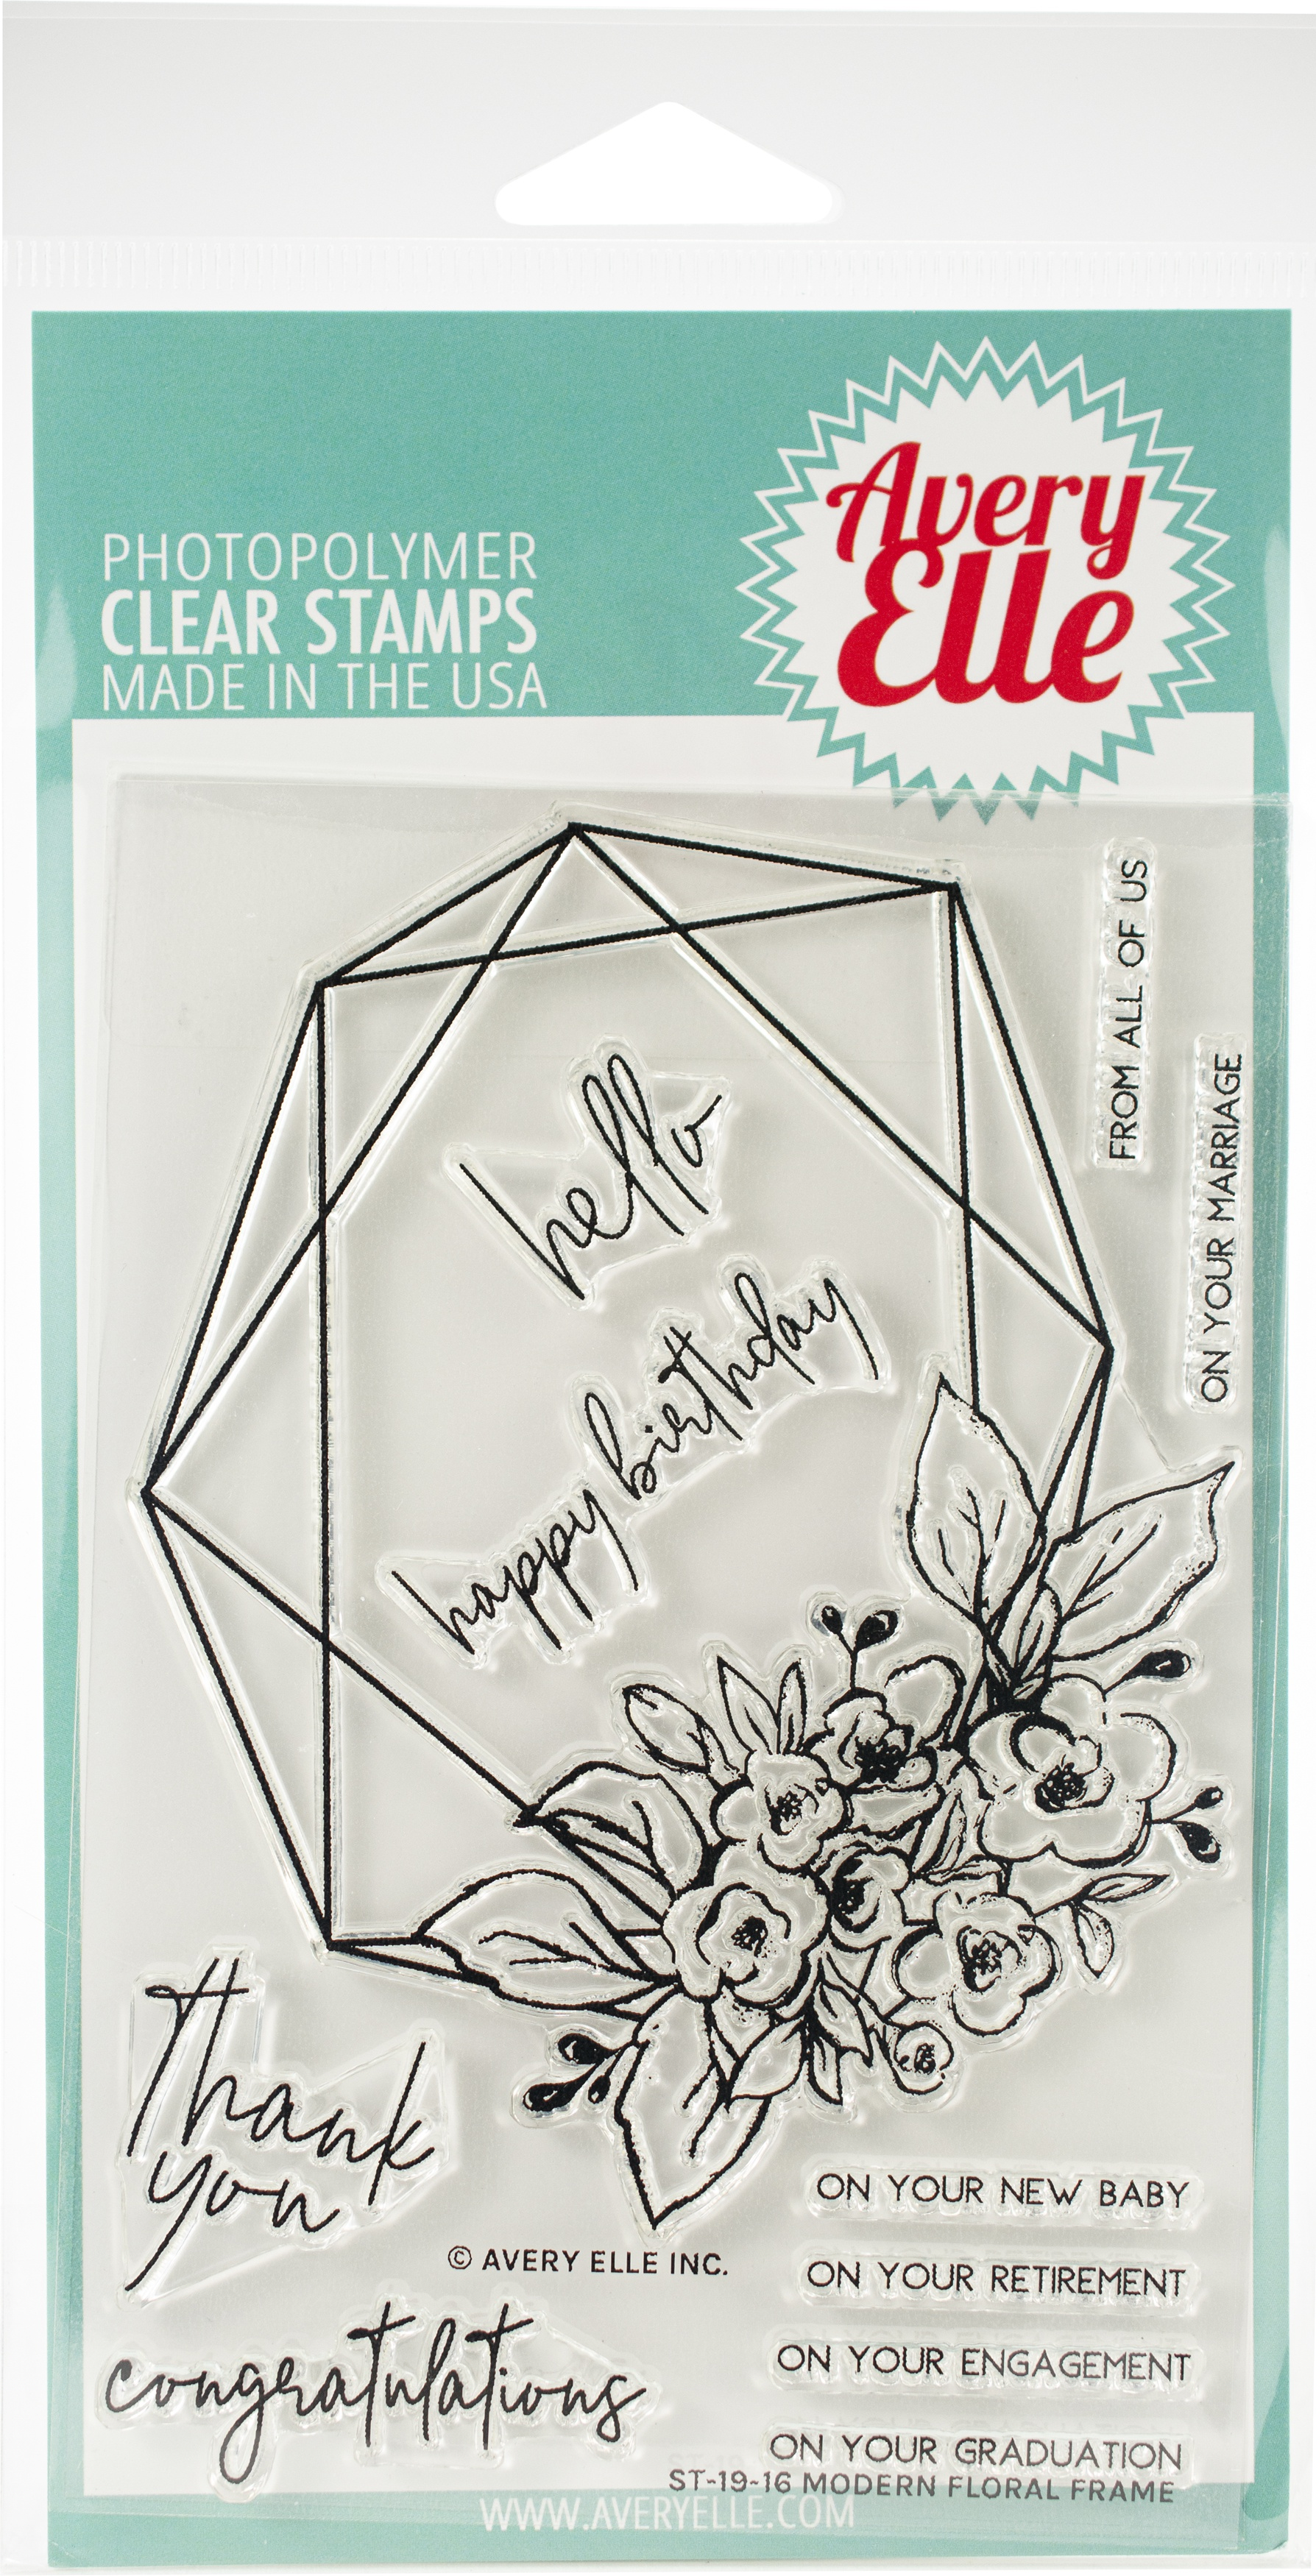 Avery Elle Clear Stamp Set 4X6-Modern Floral Frame